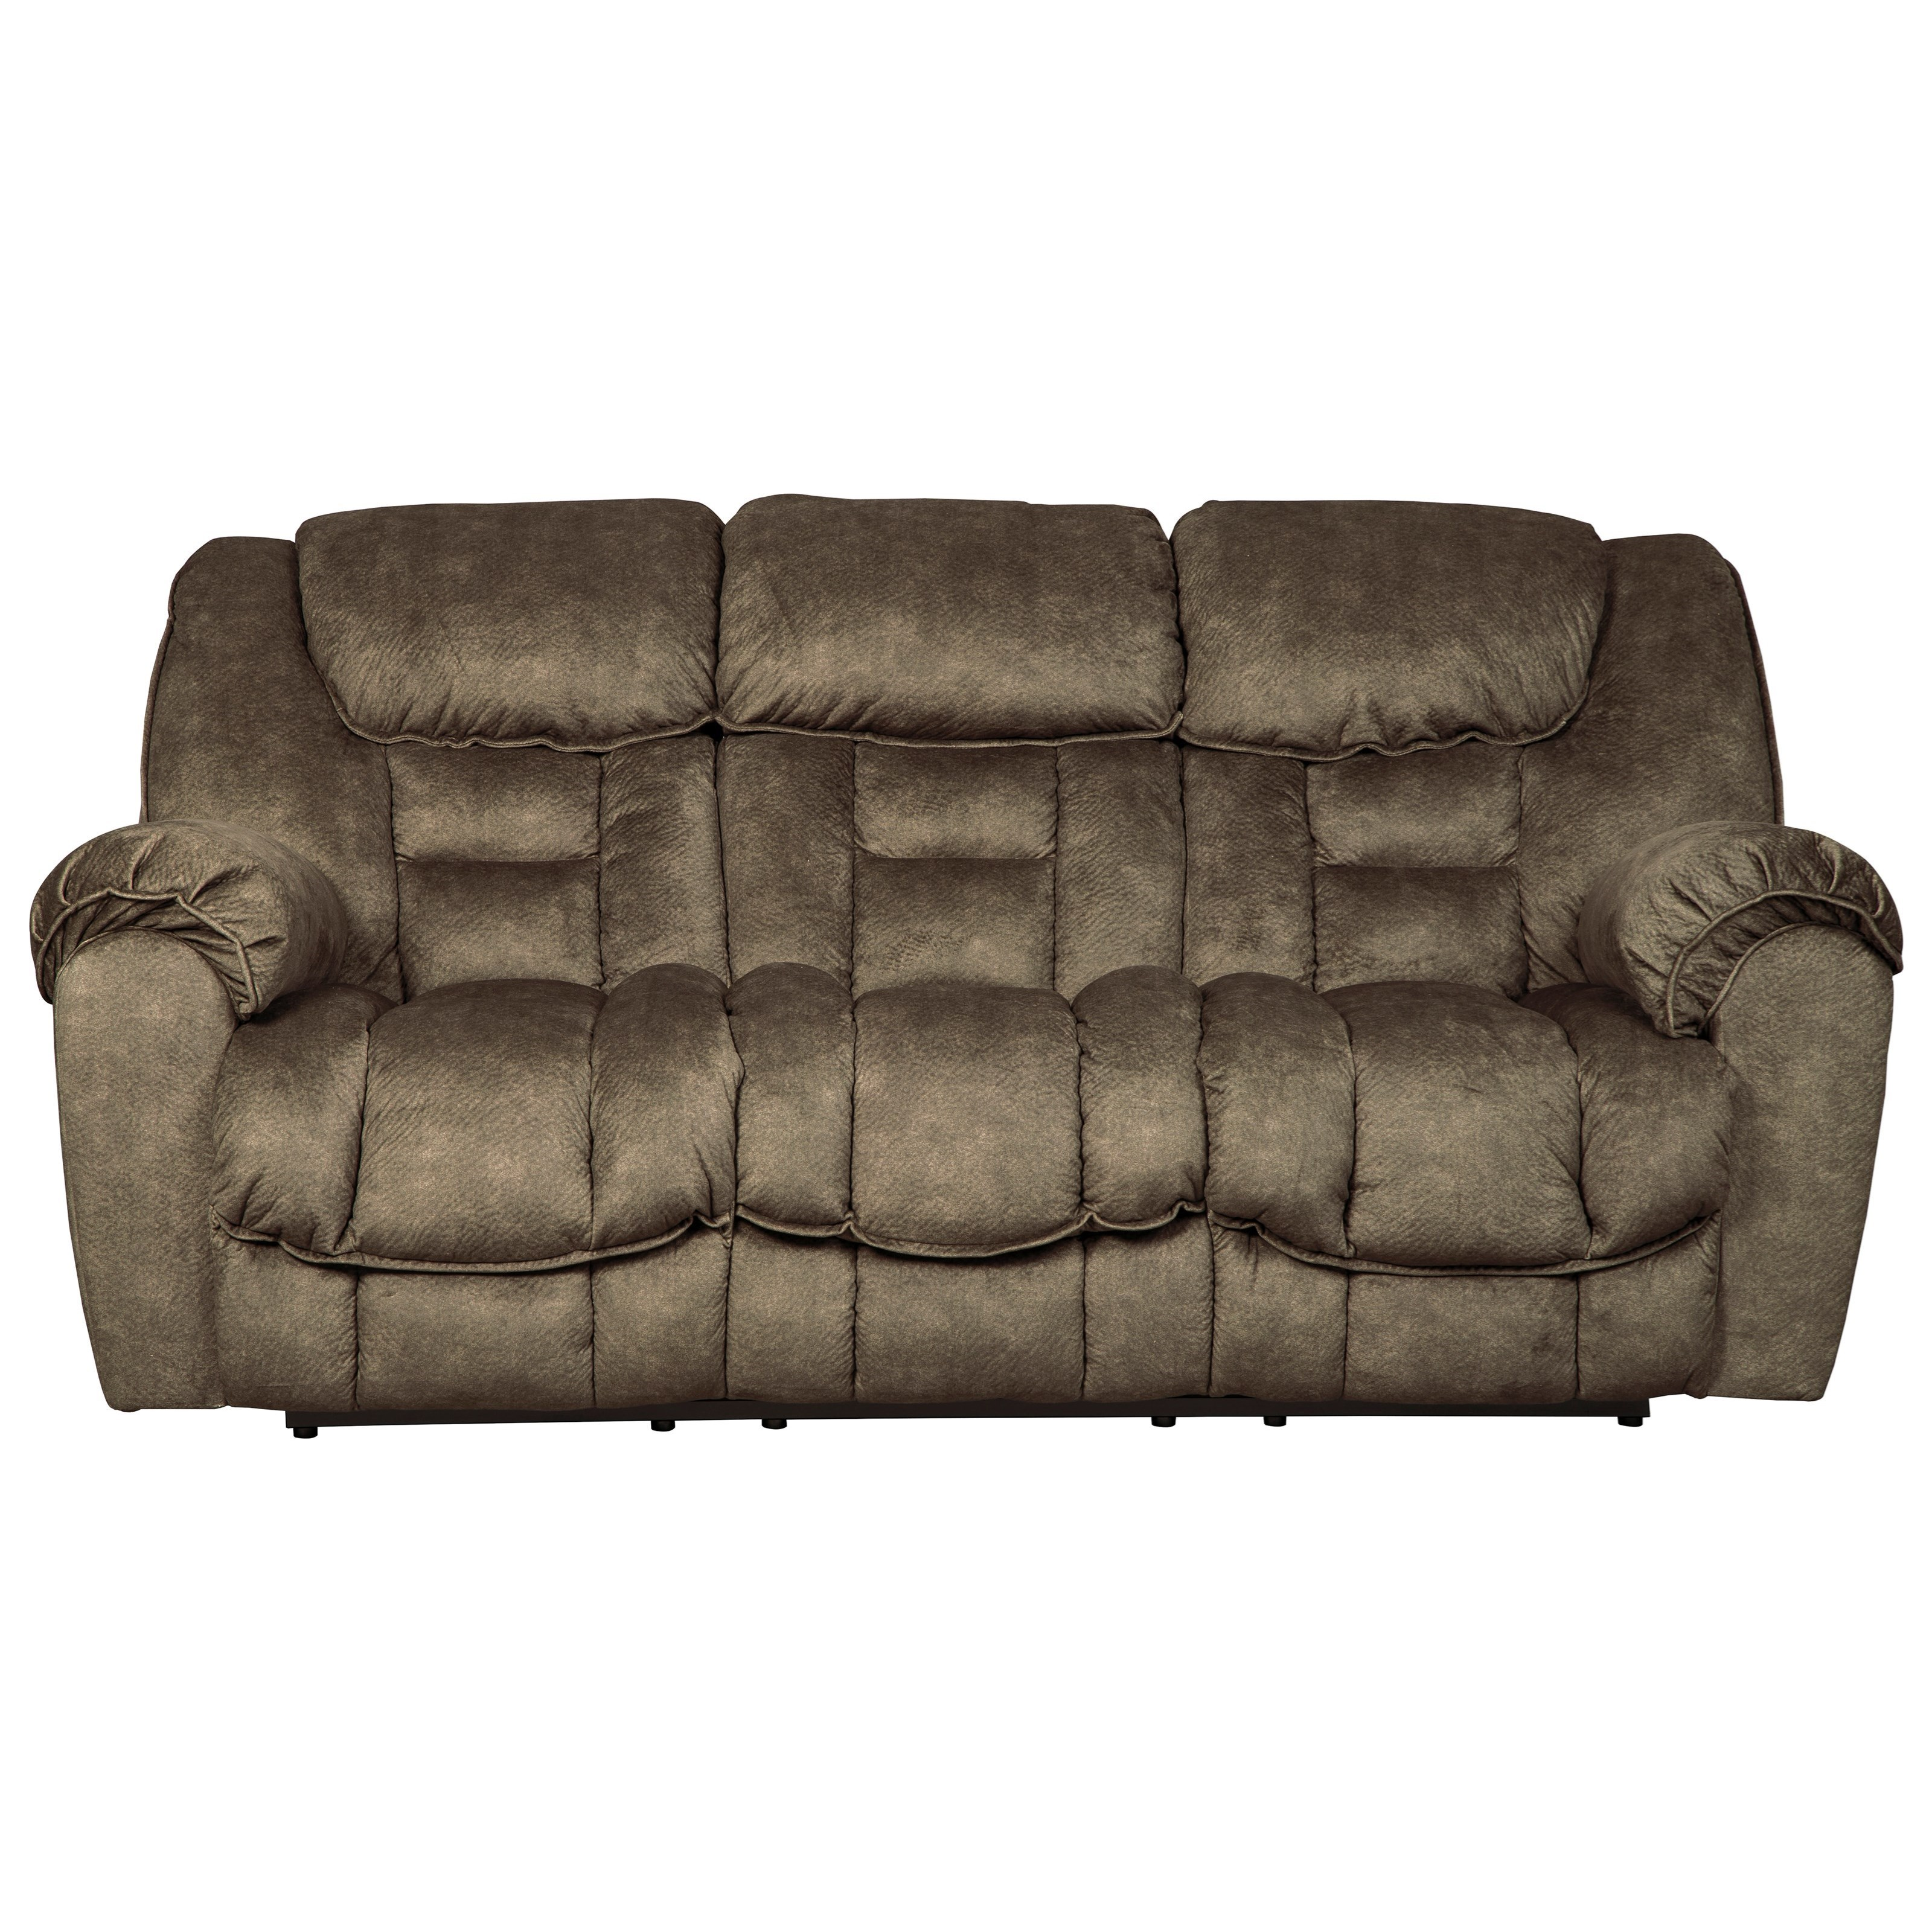 Capehorn Casual Contemporary Reclining Sofa by Signature Design by Ashley  at John V Schultz Furniture